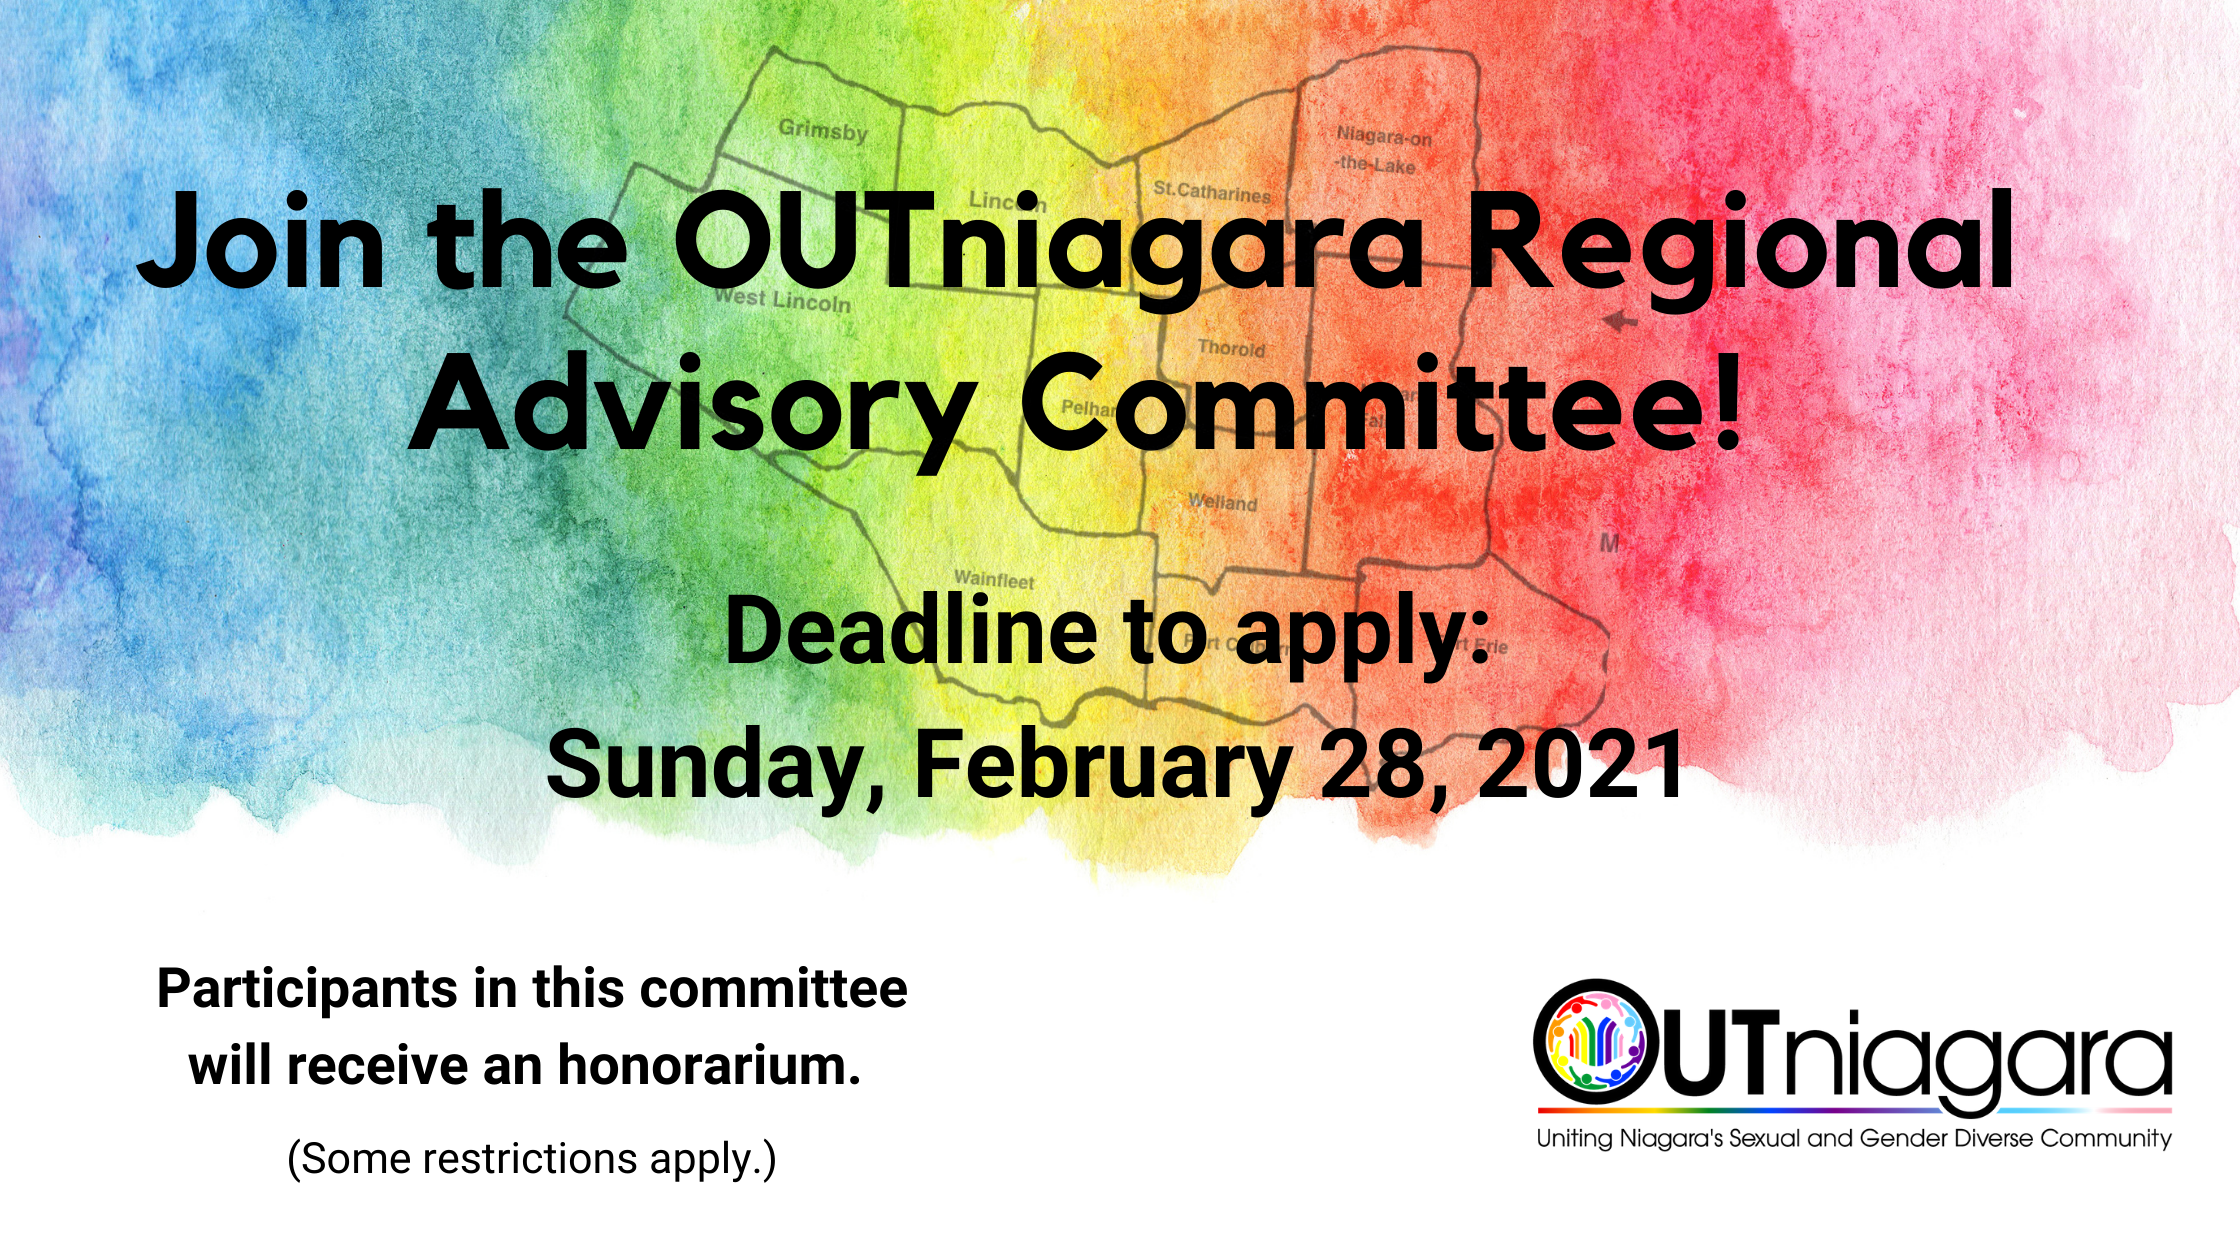 Join the Regional Advisory Committee!